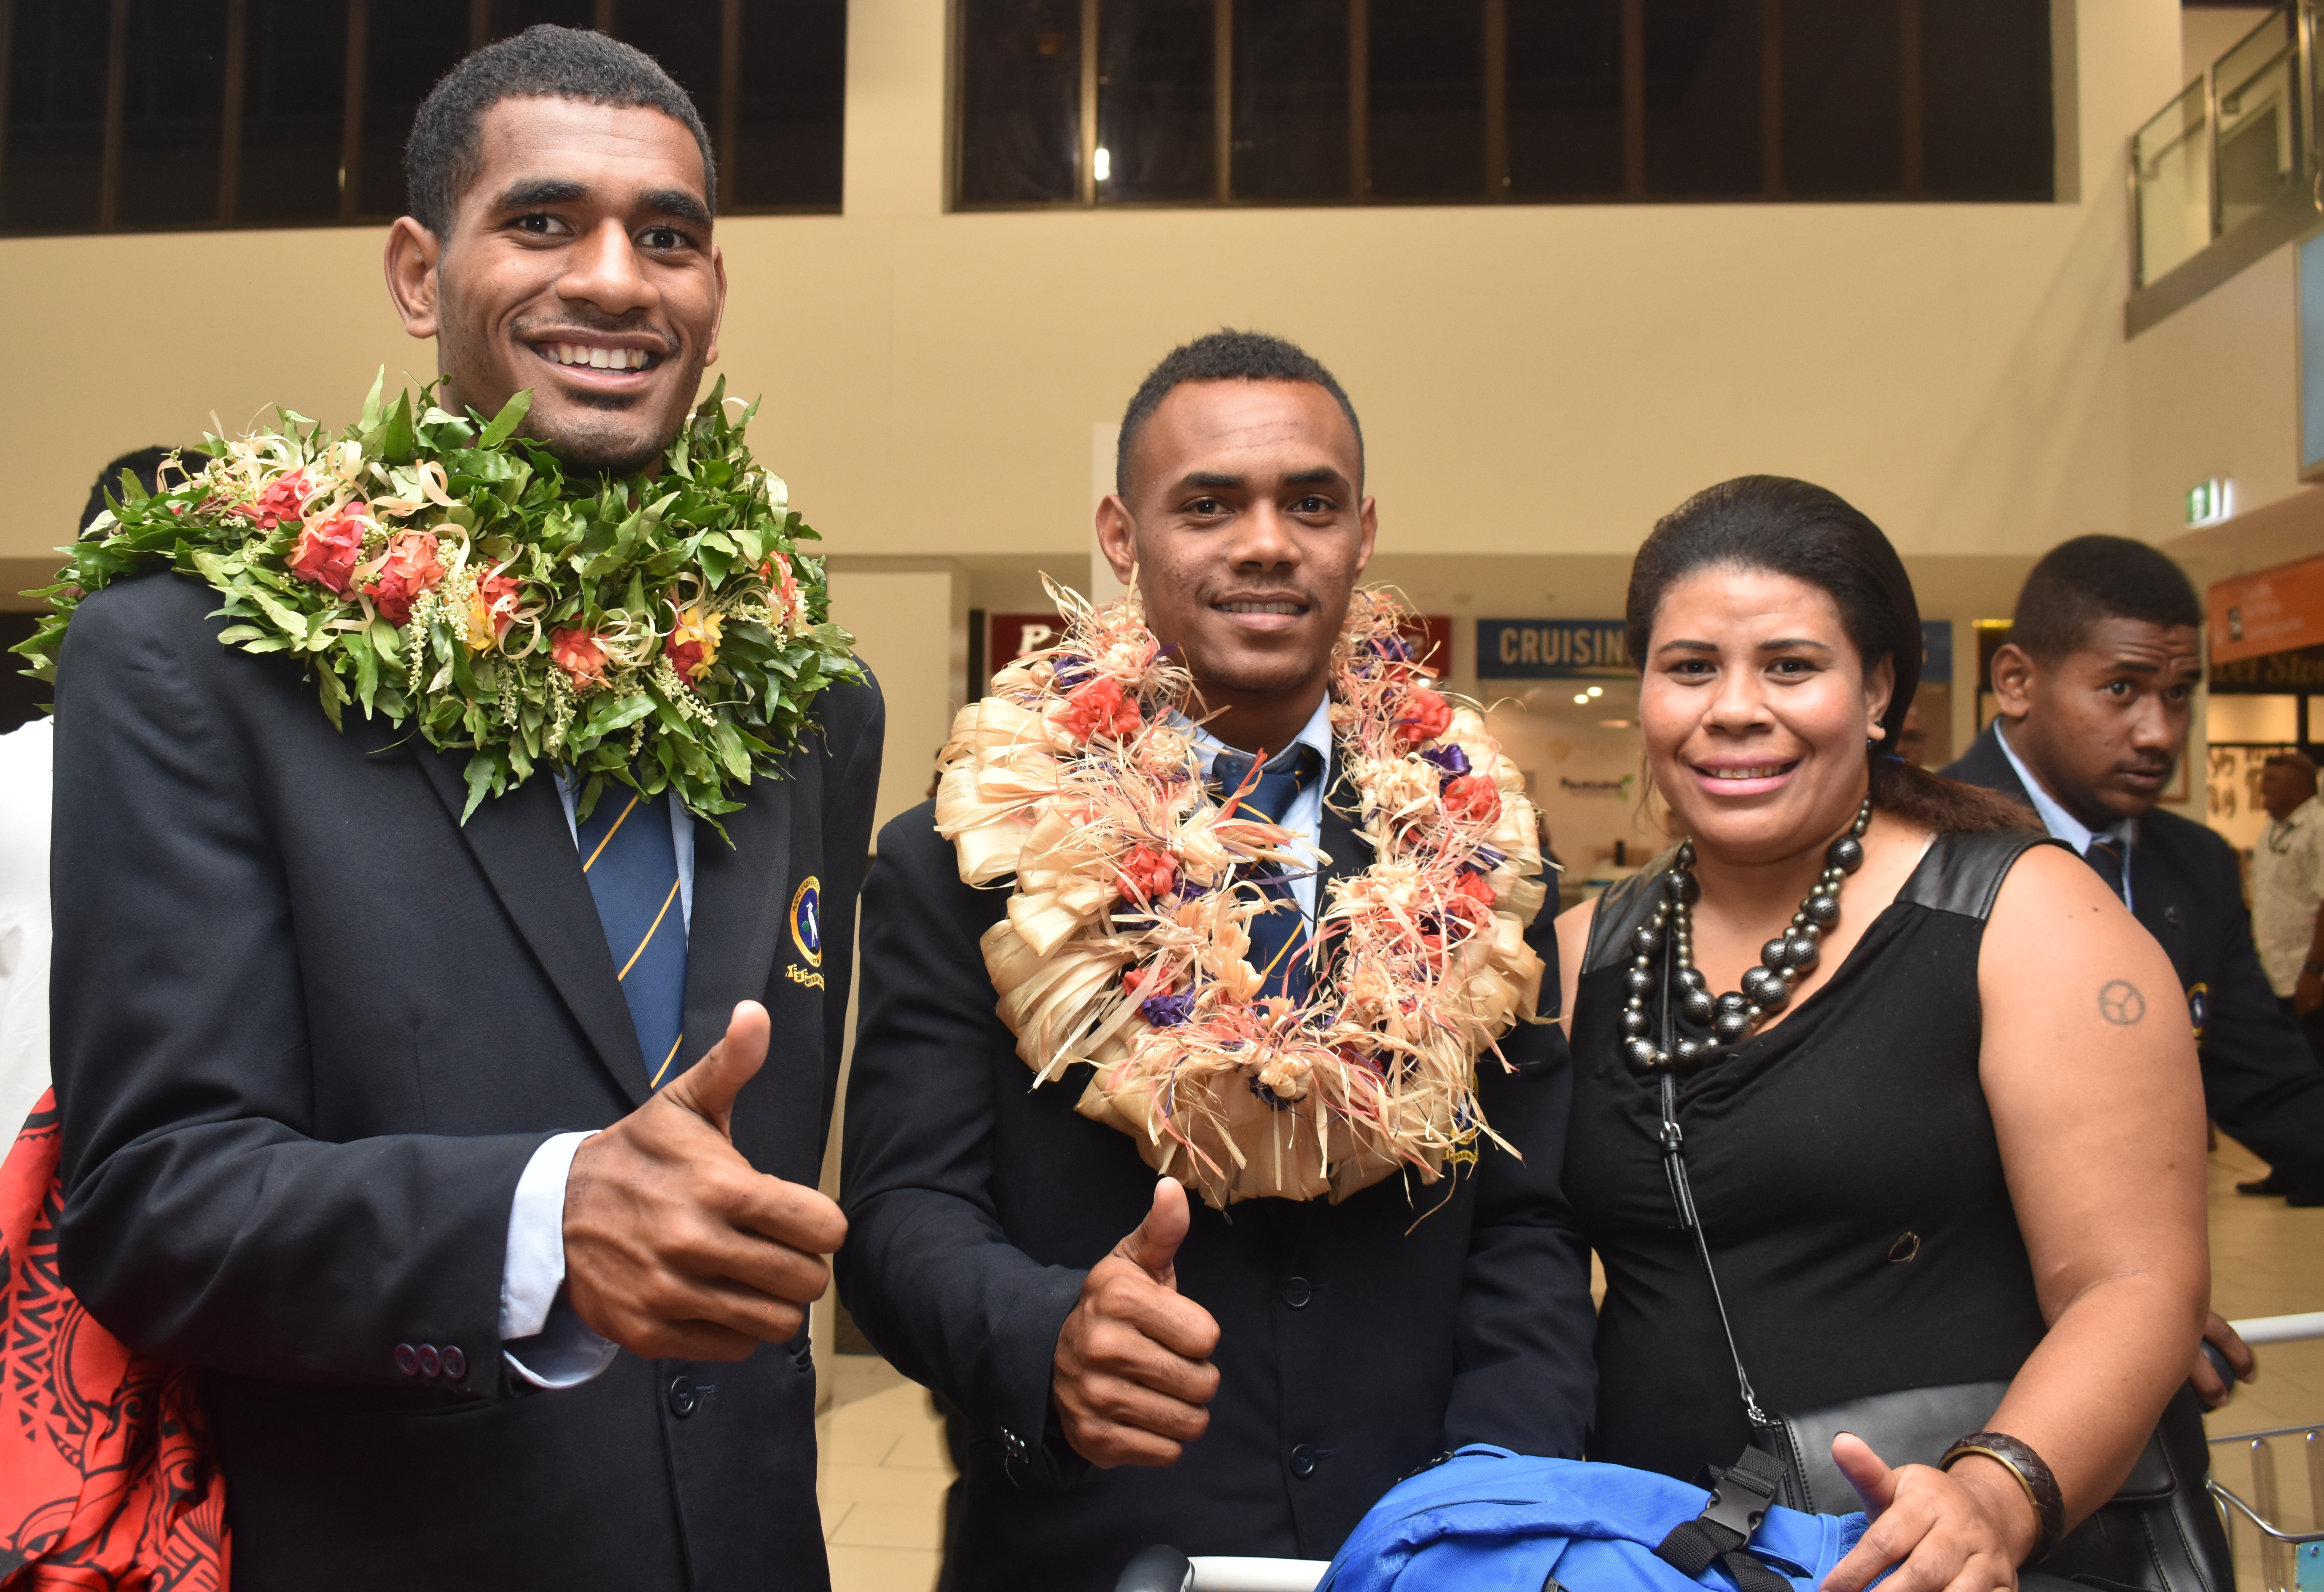 Members of the RKS U18 team with a family member wat the Nadi International Airport on May 7, 2018. Photo: Waisea Nasokia